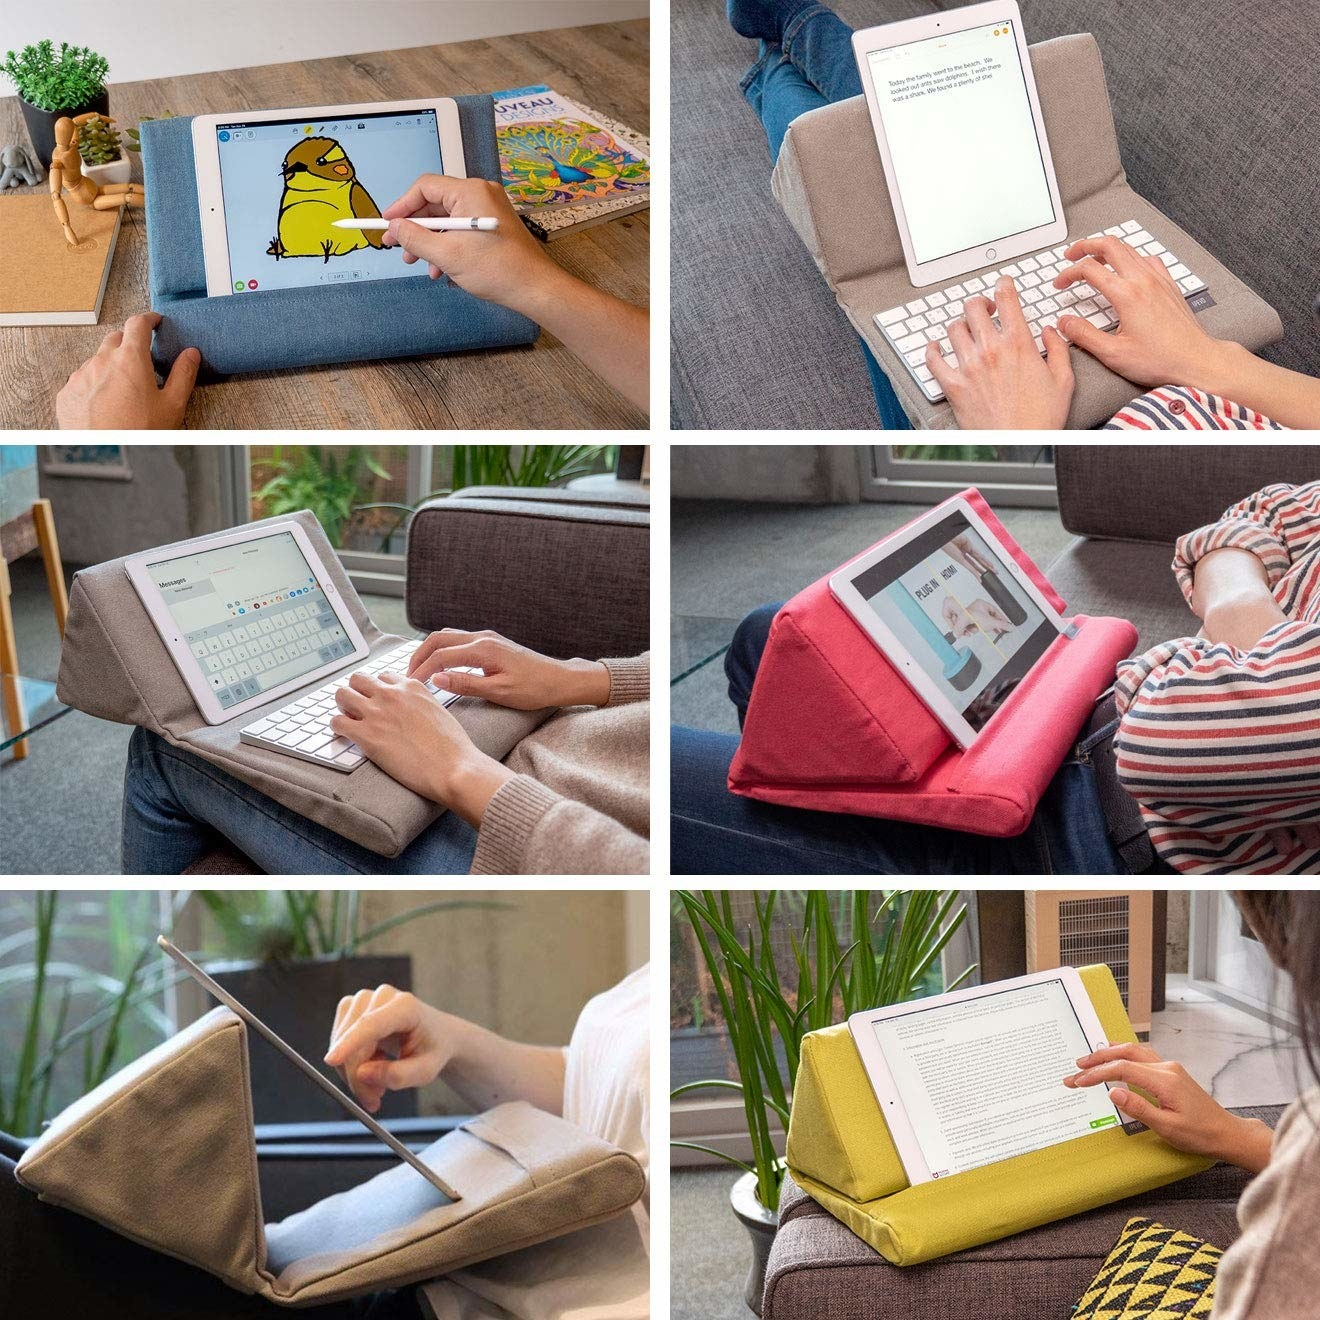 soft pillow stand for tablet